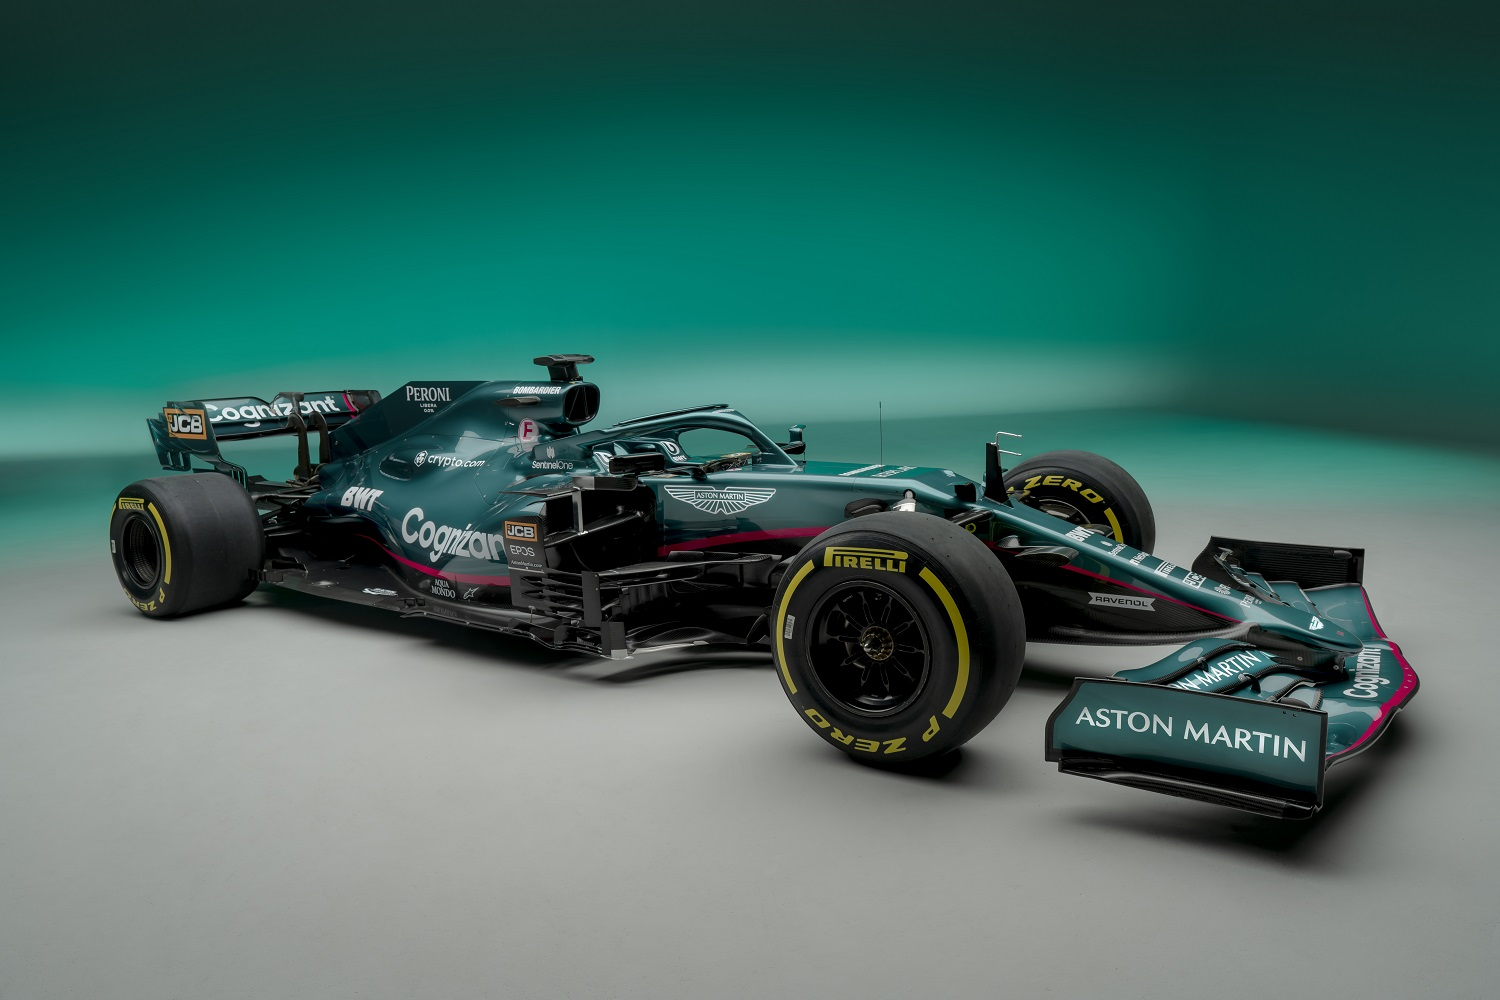 Aston Martin Begins Important New Era With Return To Formula One™